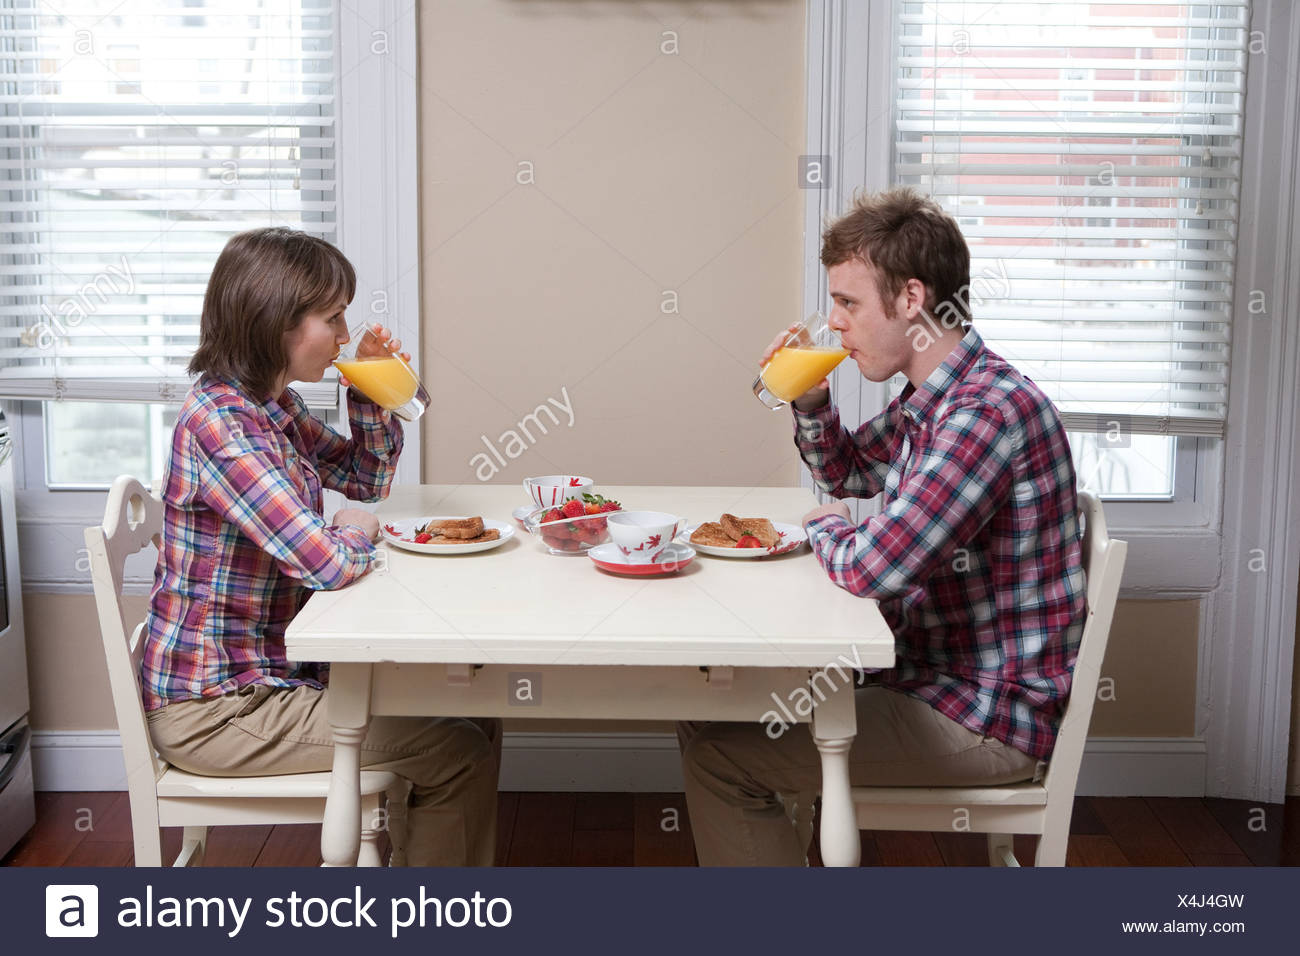 Young couple drinking orange juice at kitchen table - Stock Image